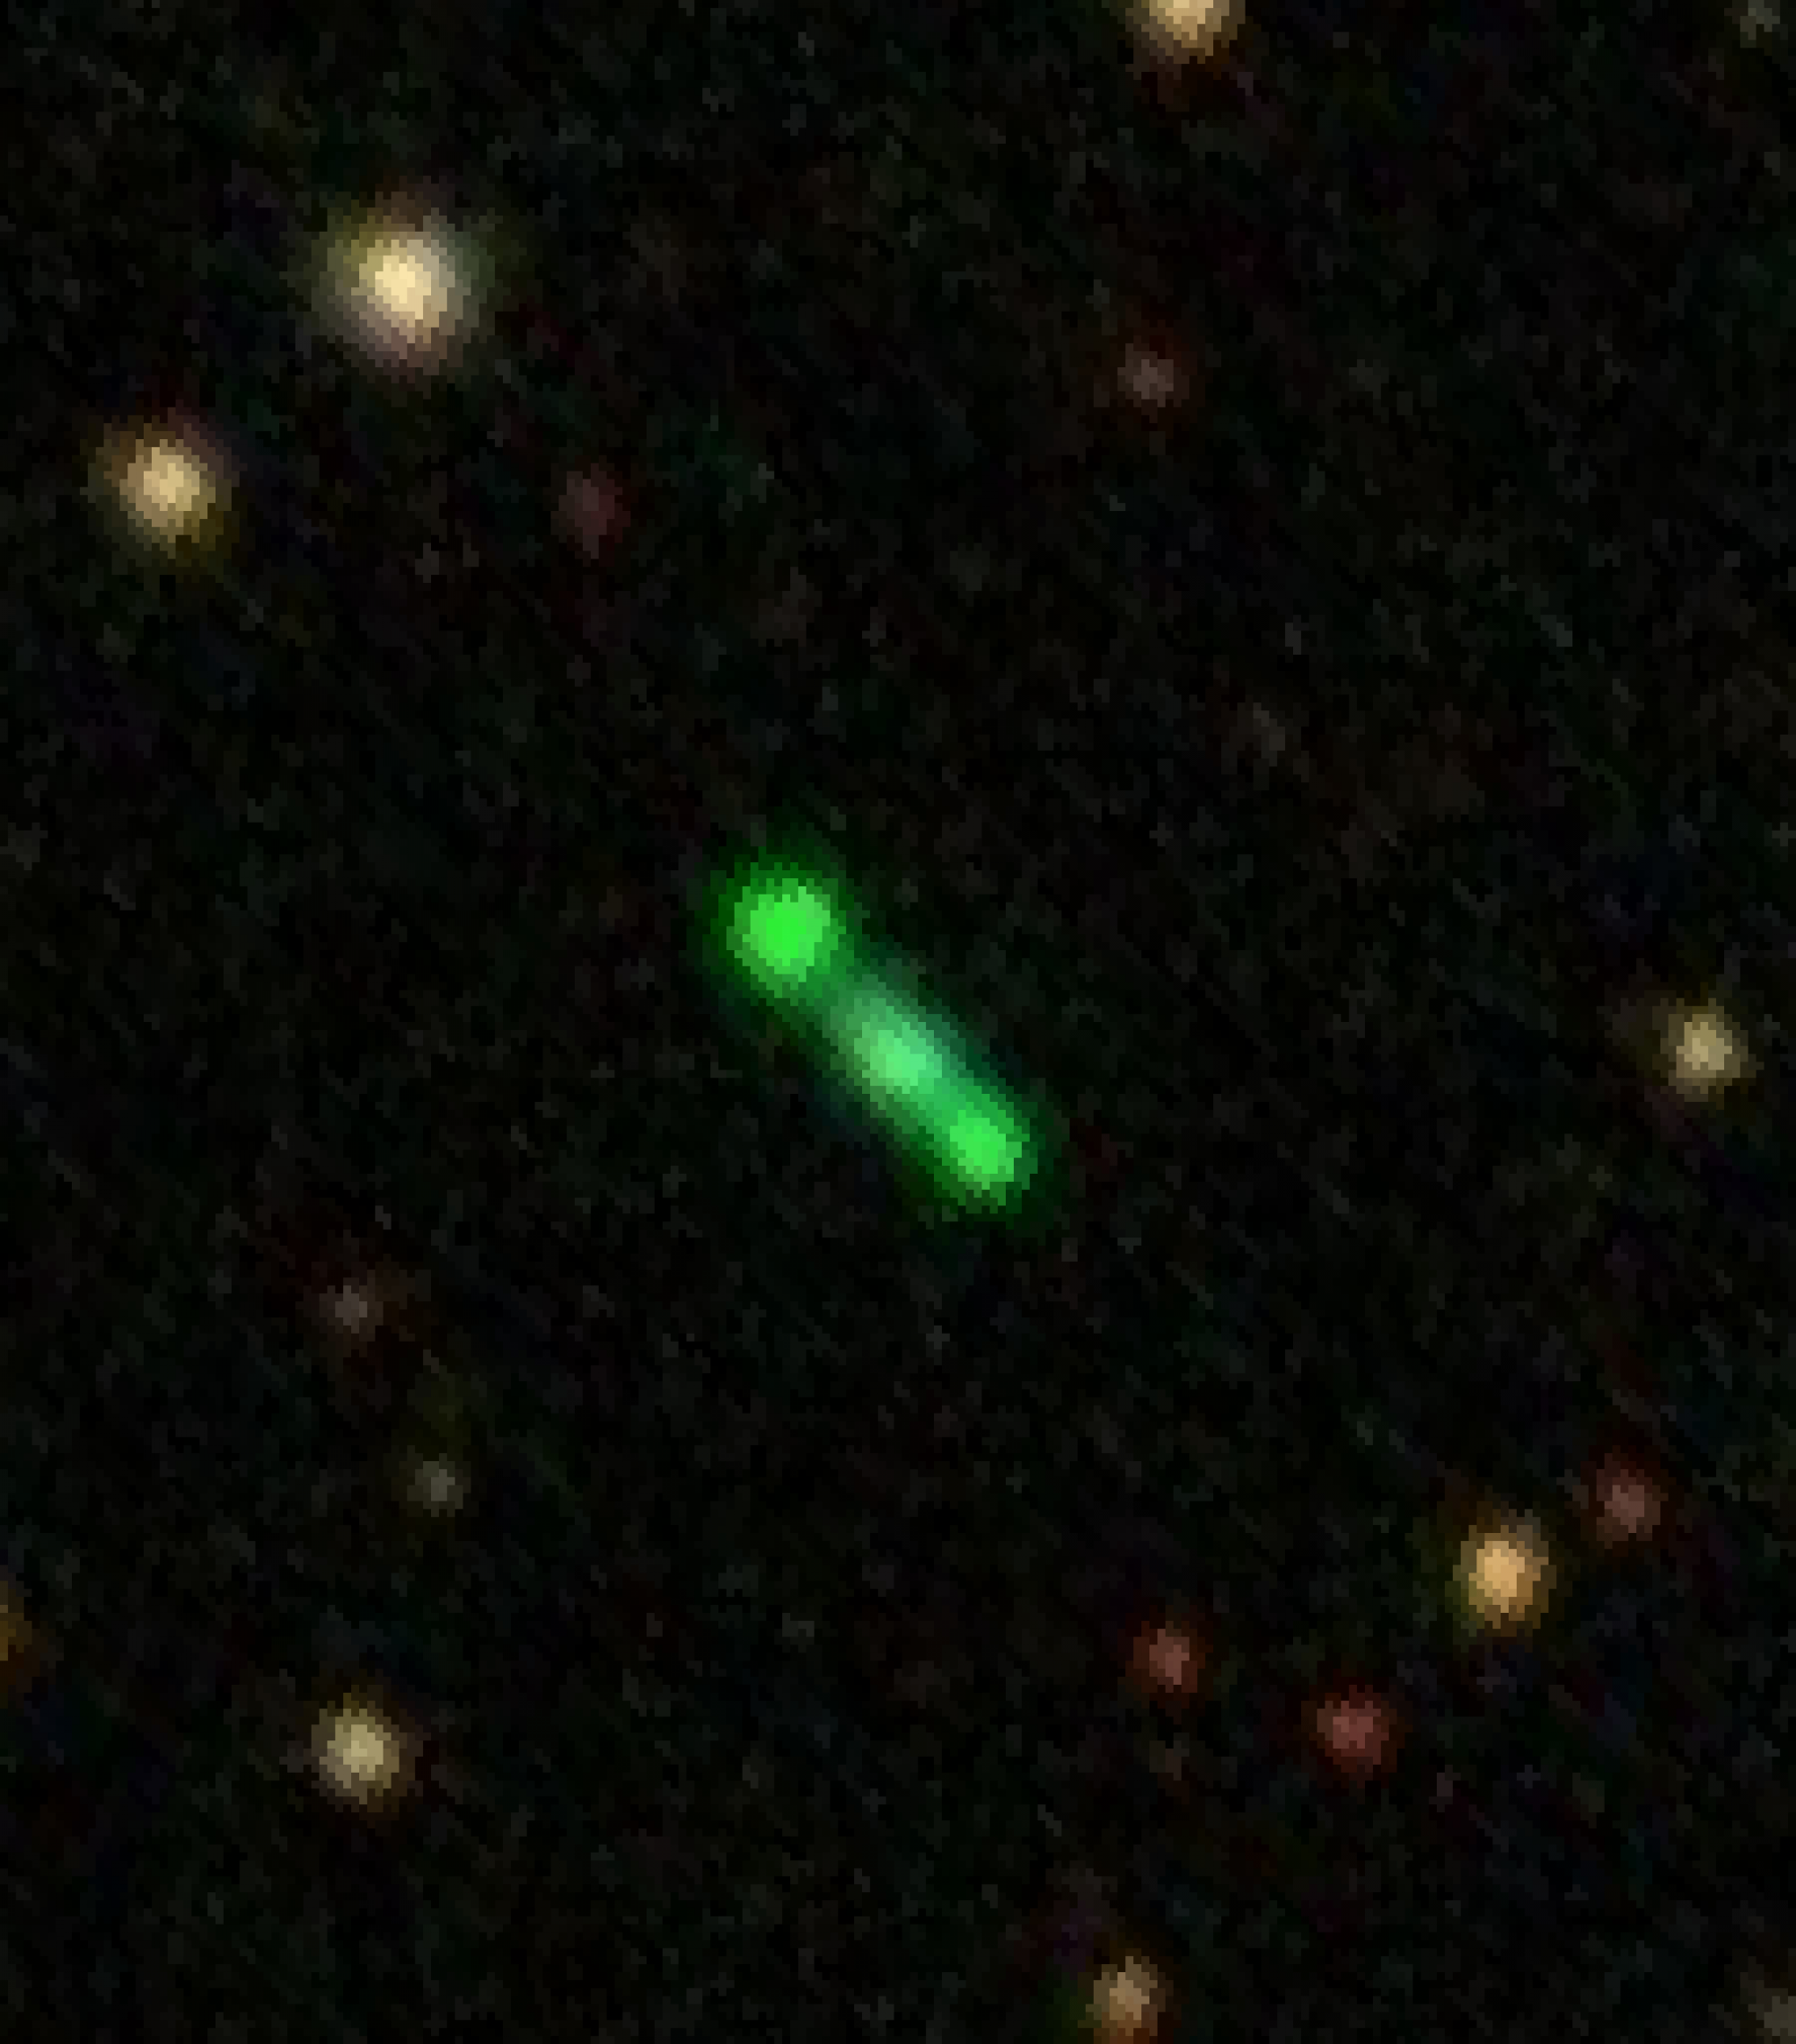 At 15,000 light-years, object K4-47 is about seven times farther away than the Twin Jet nebula, making it much more difficult to image. Based on what scientists have learned about K4-47 so far, it may have a similar structure of two lobes extending from t